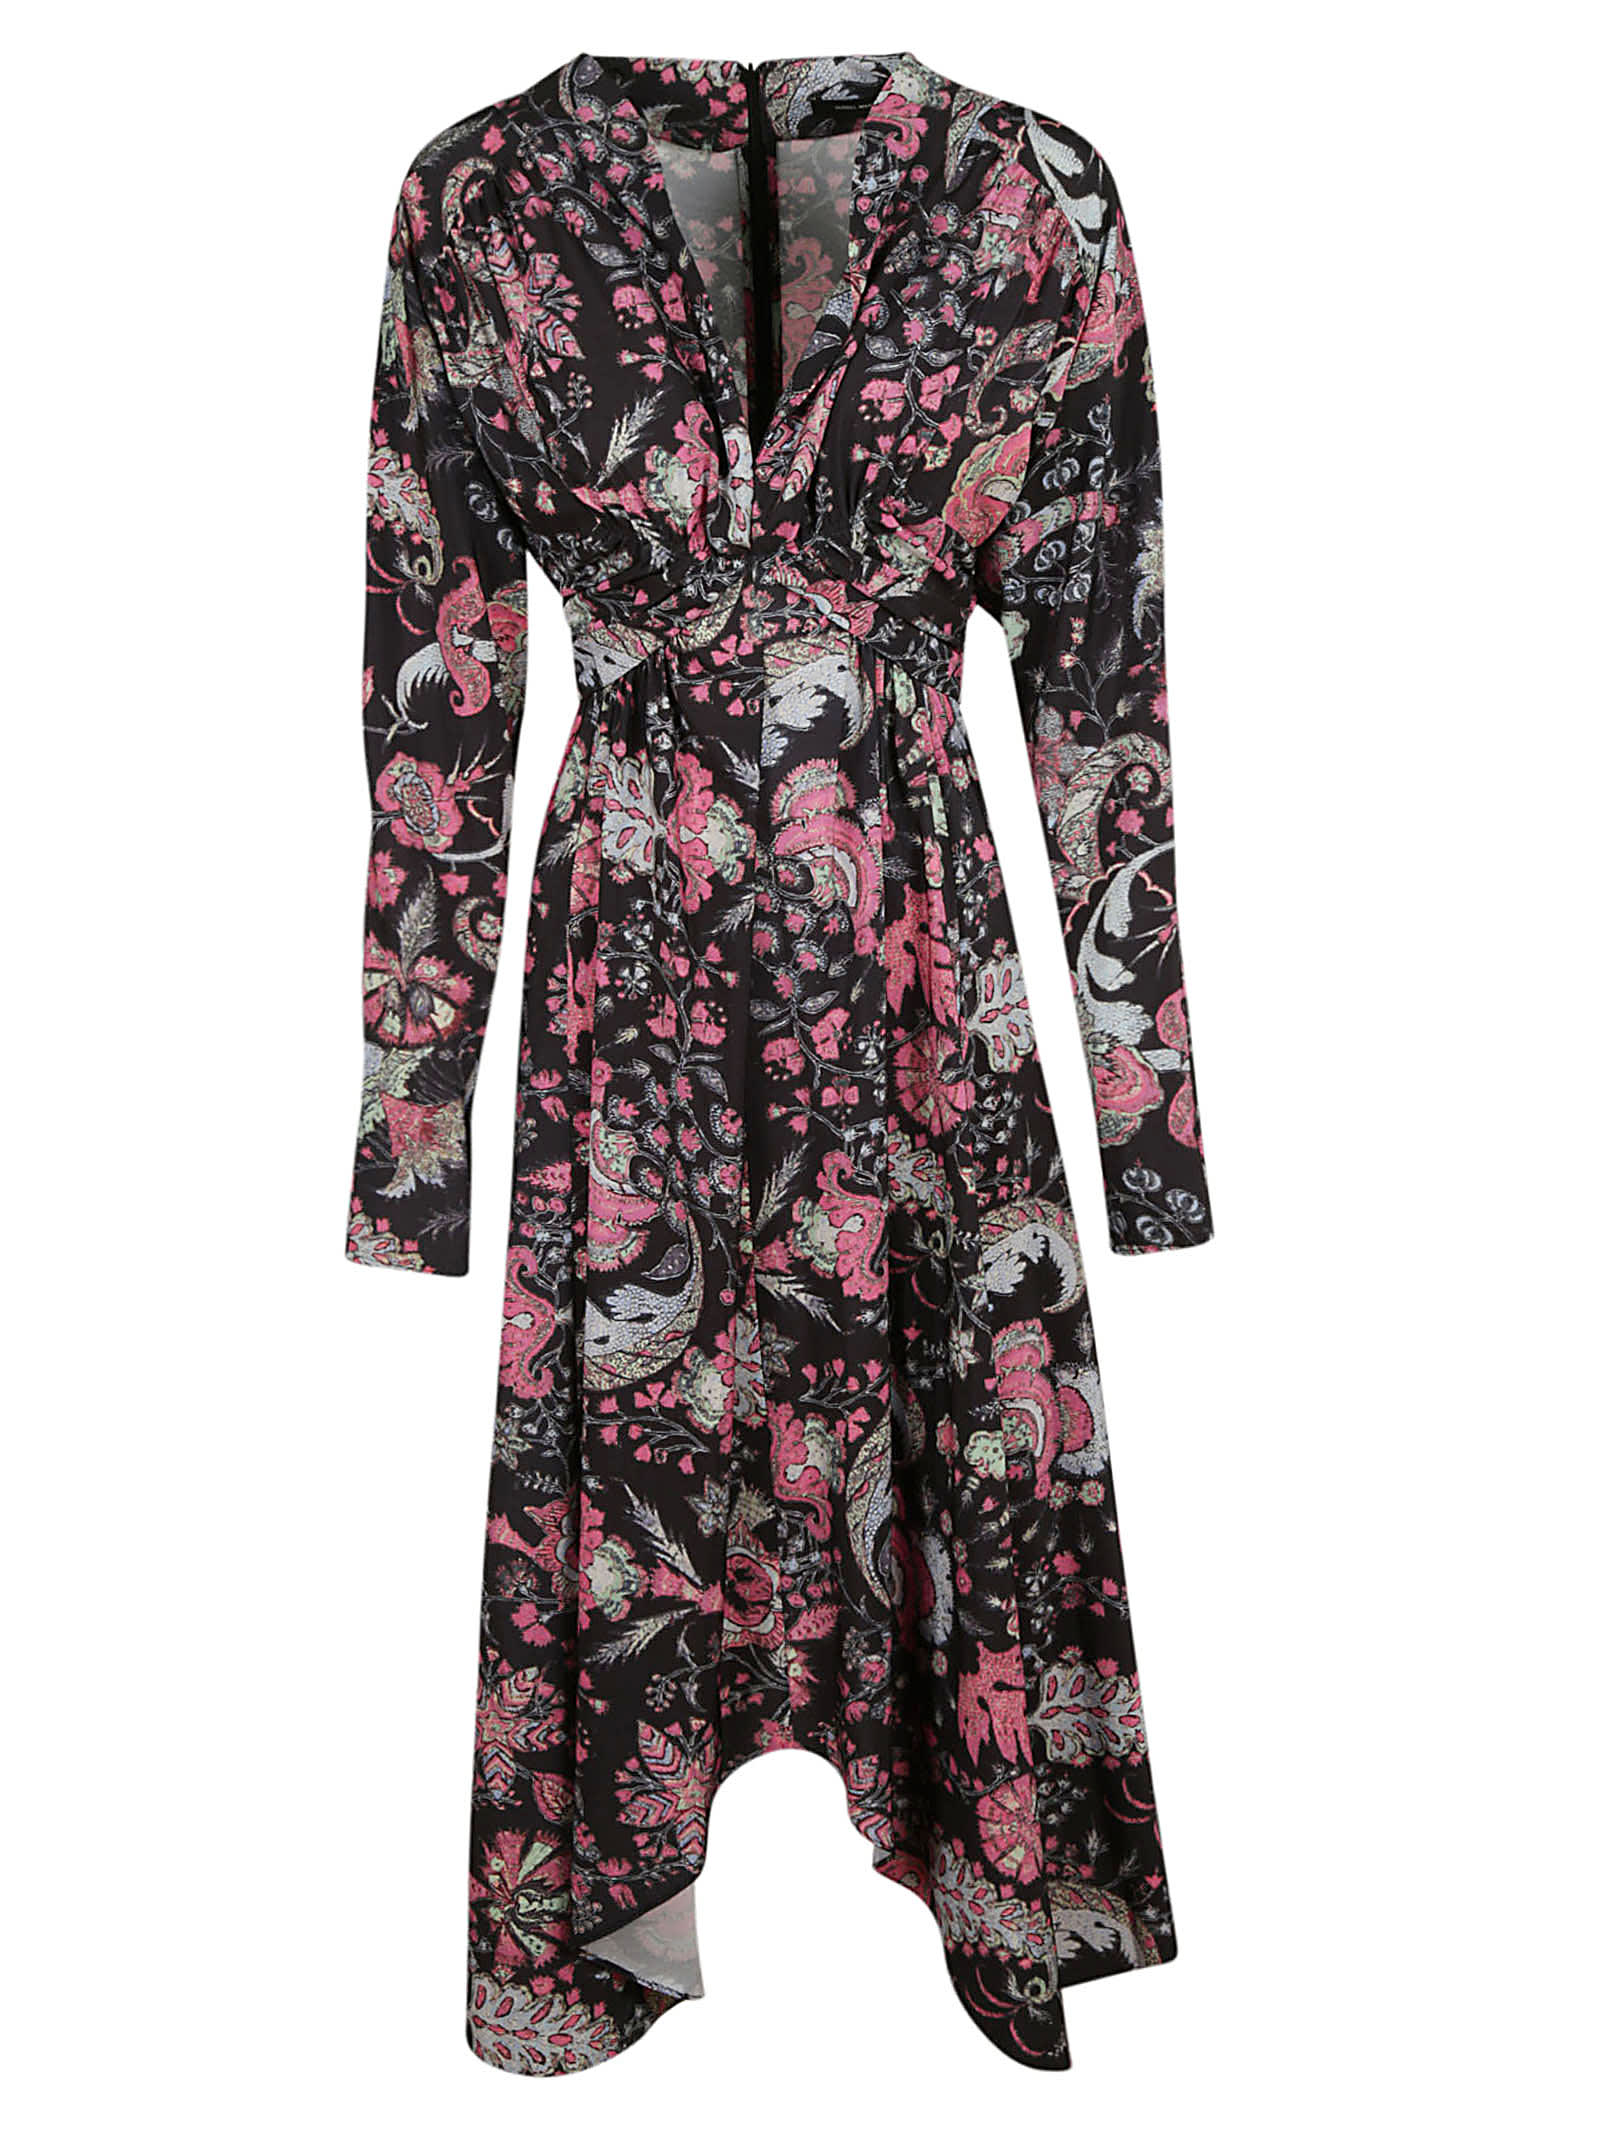 Isabel Marant Printed Dress